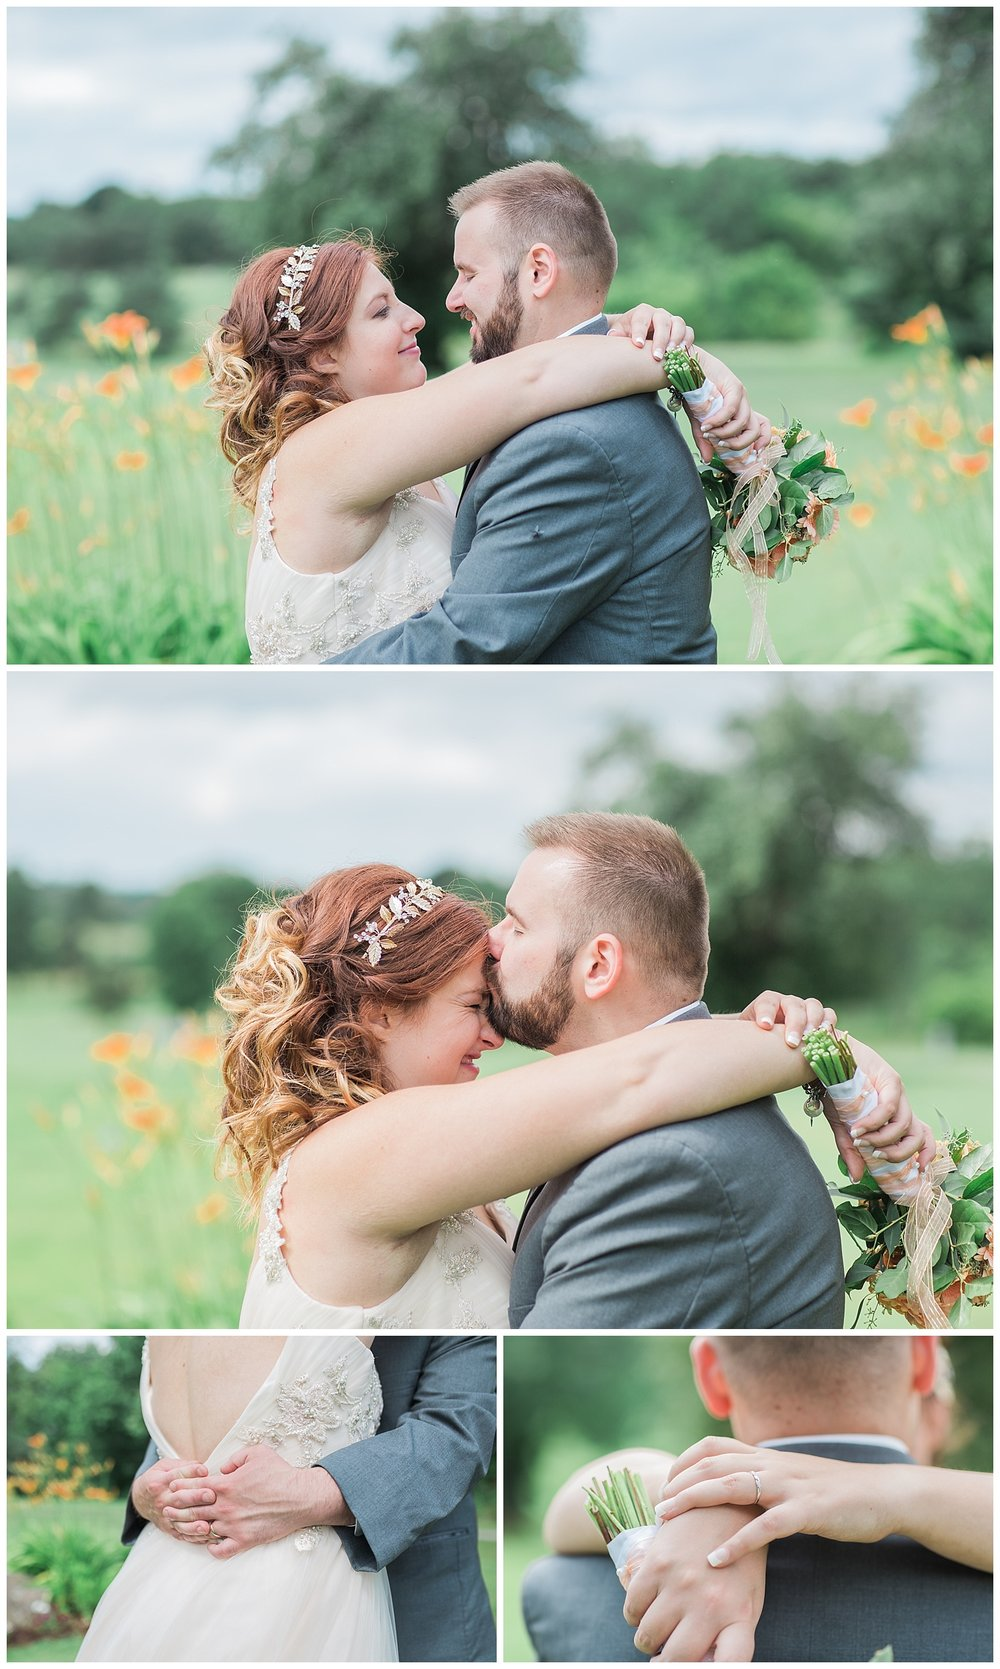 Brian and Molly Wed in Conesus NY - Lass & Beau-711_Buffalo wedding photography.jpg